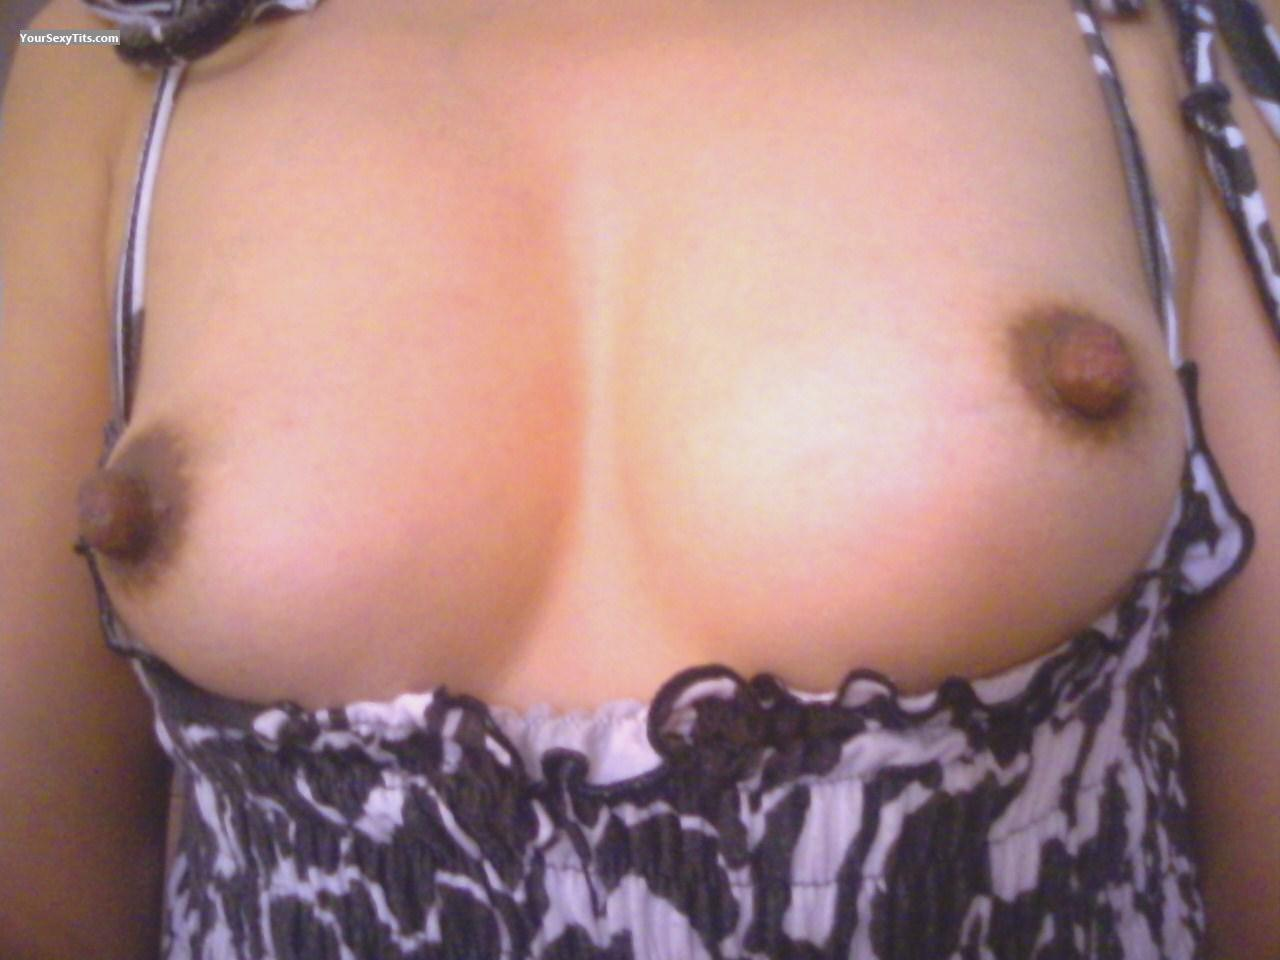 My Small Tits Selfie by Tat